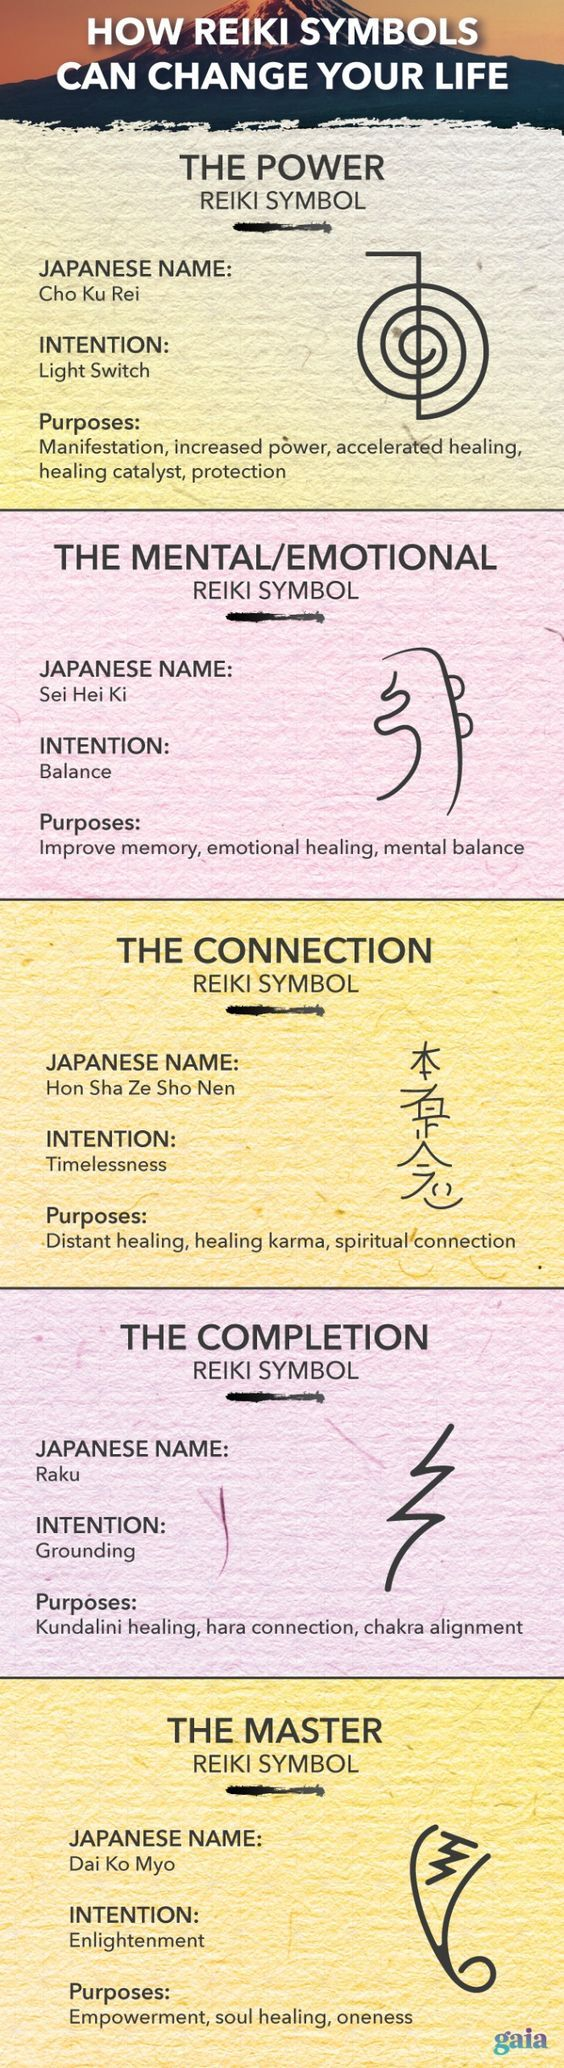 149 best reiki images on pinterest spirituality reiki learn how reiki symbols can change your life here are five reiki symbols you should biocorpaavc